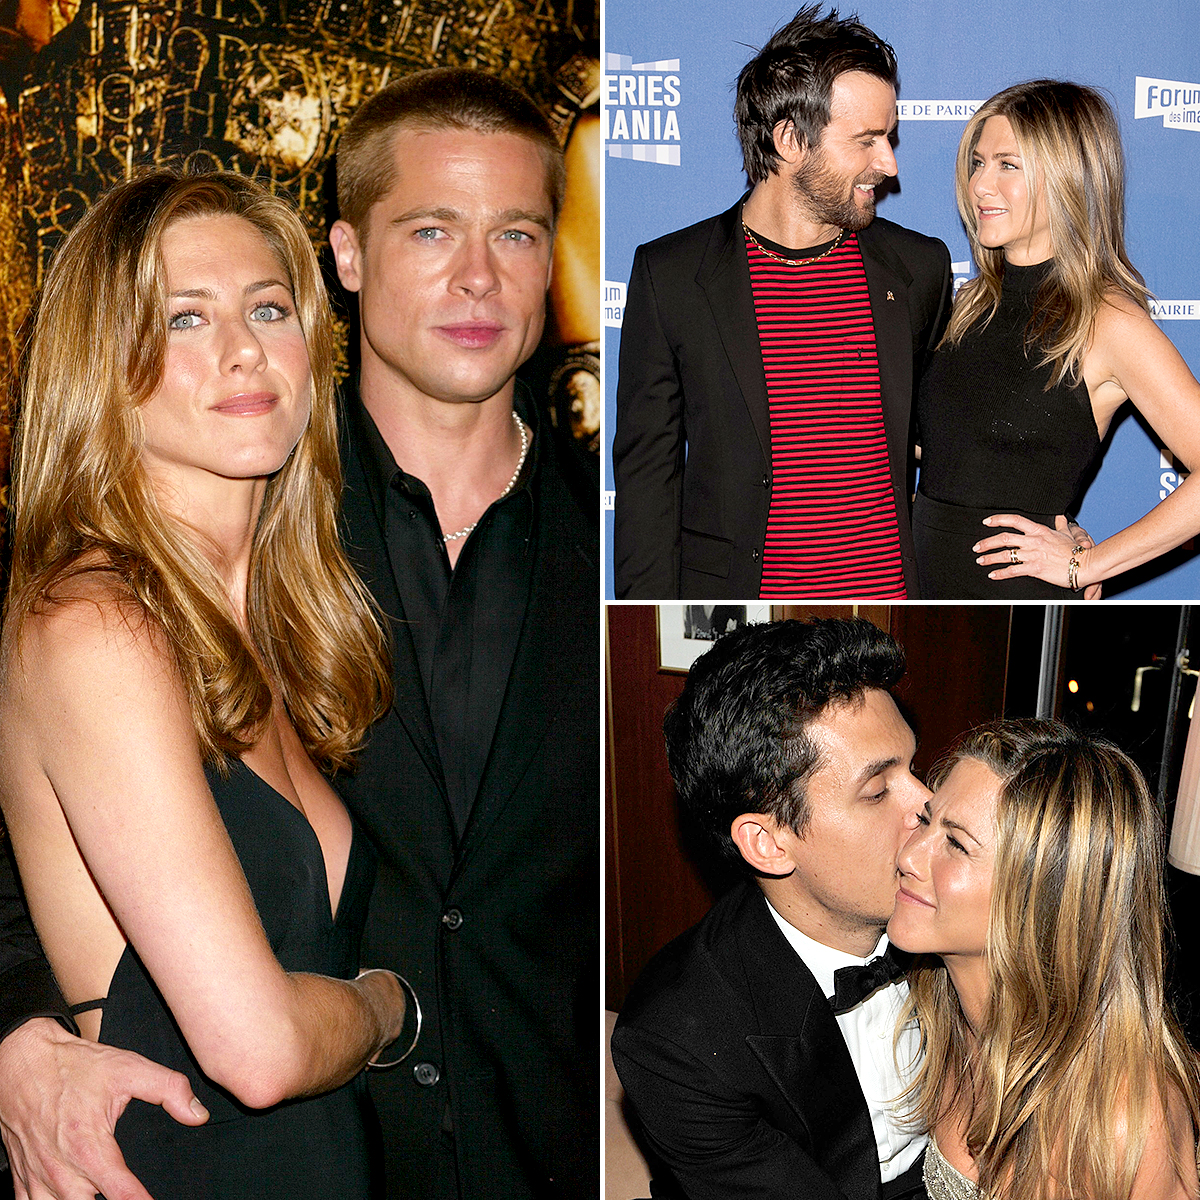 Who is jennifer aniston dating who is brad from the bachelor dating now